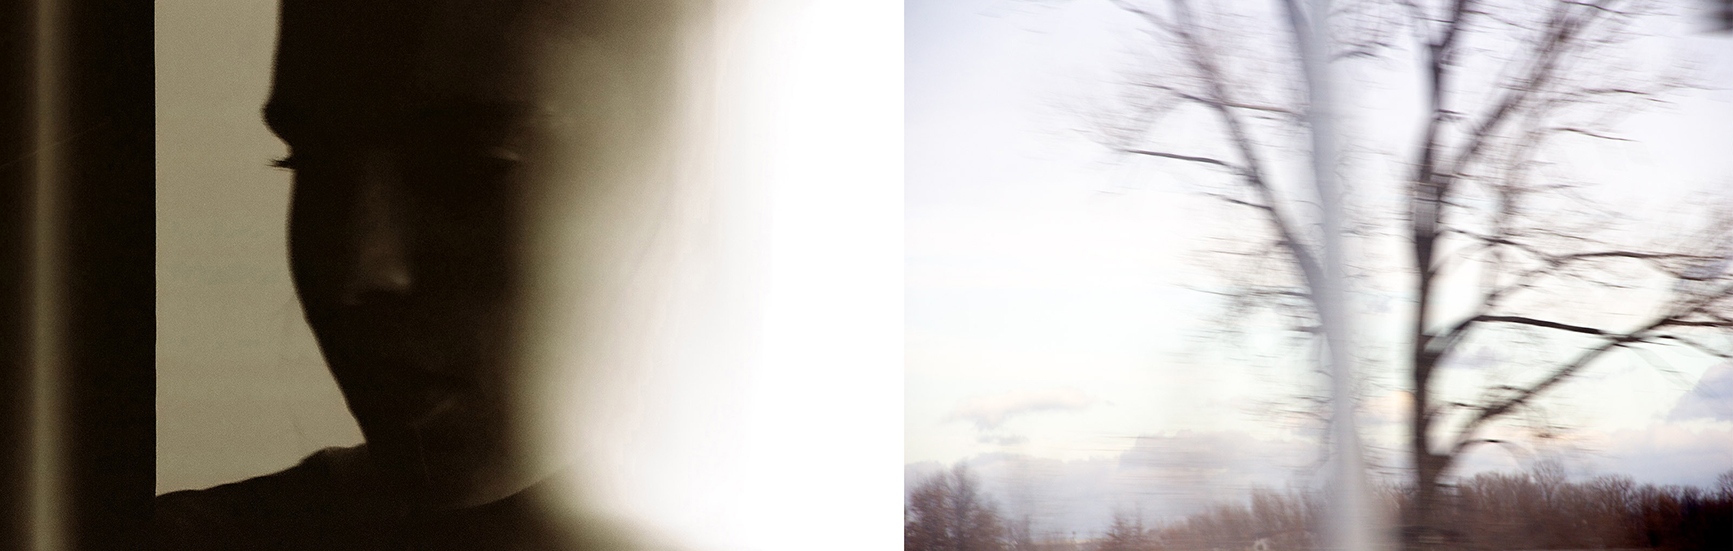 After autumn  (diptych), 2019